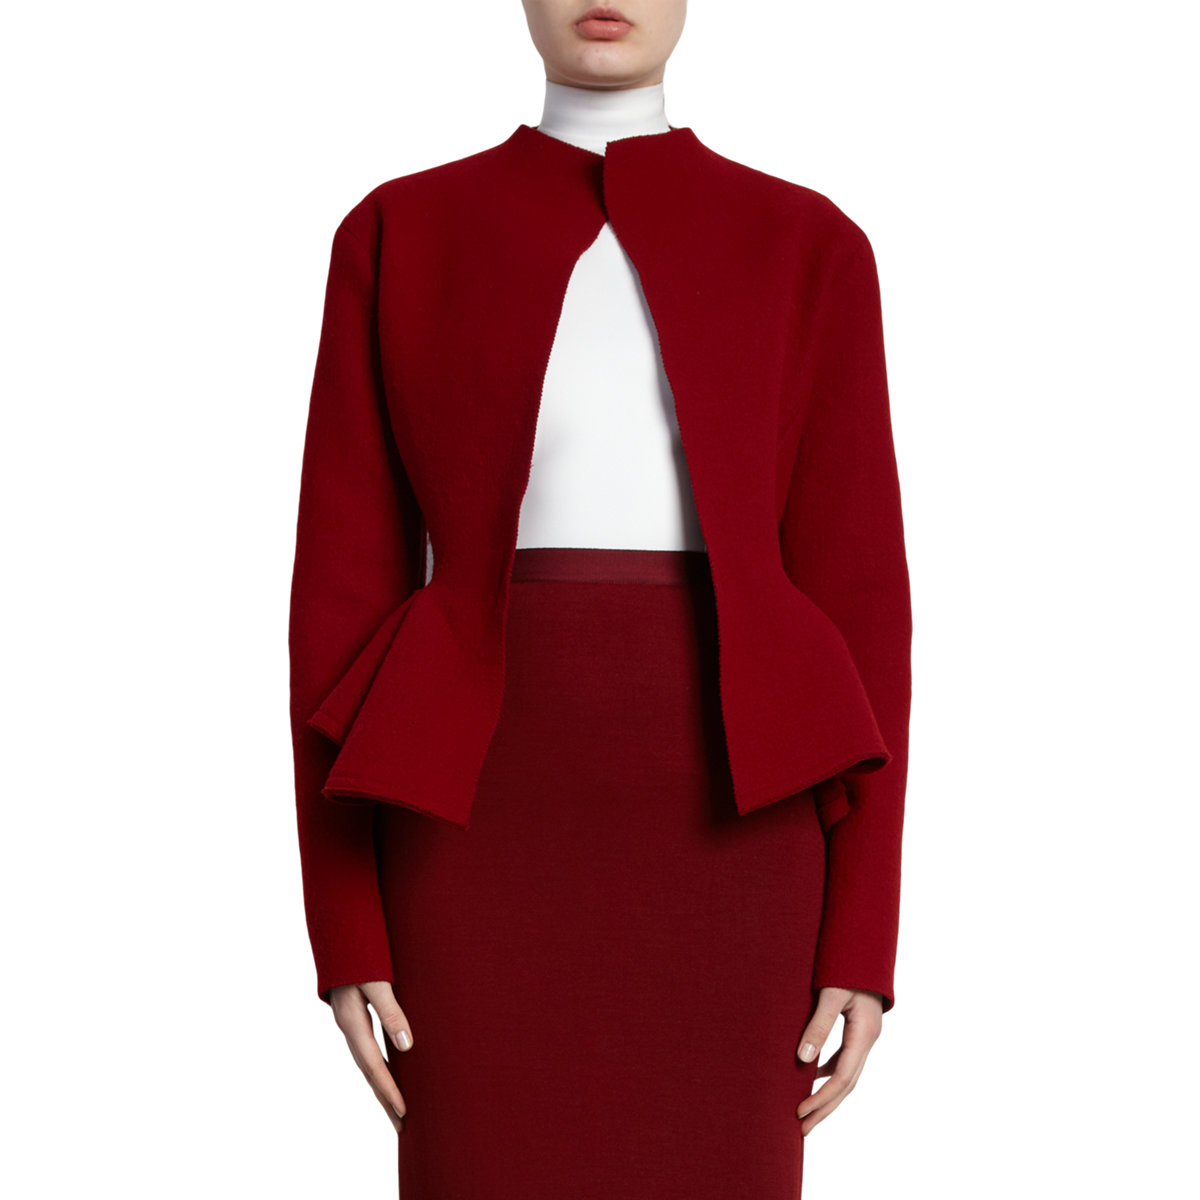 You searched for: red peplum coat! Etsy is the home to thousands of handmade, vintage, and one-of-a-kind products and gifts related to your search. No matter what you're looking for or where you are in the world, our global marketplace of sellers can help you find unique and affordable options. Let's get started!